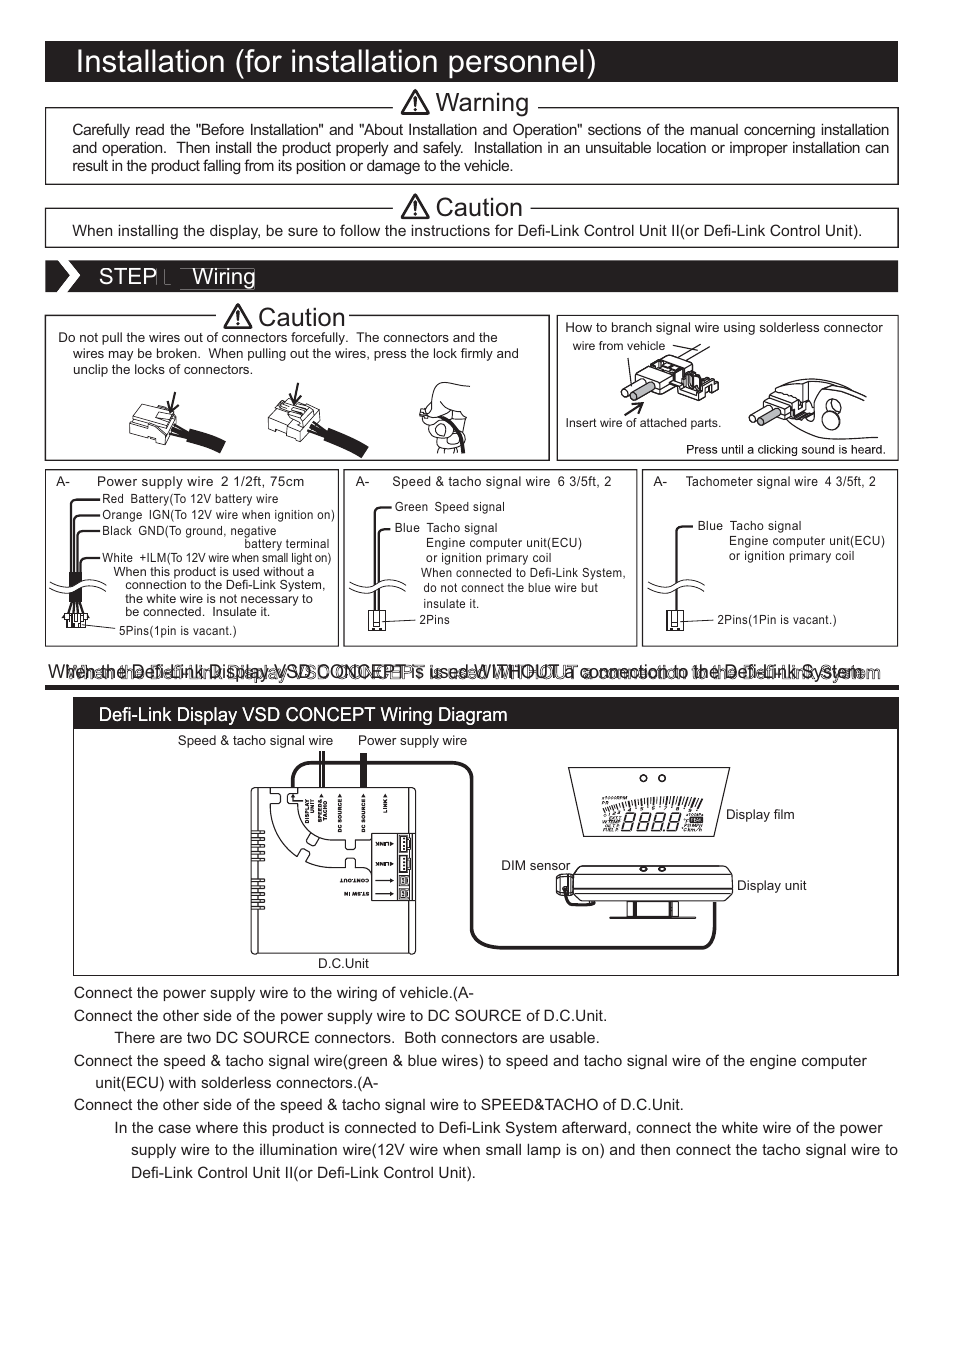 defi link vsd concept page3 installation (for installation personnel), warning, caution defi defi tachometer wiring diagram at bayanpartner.co